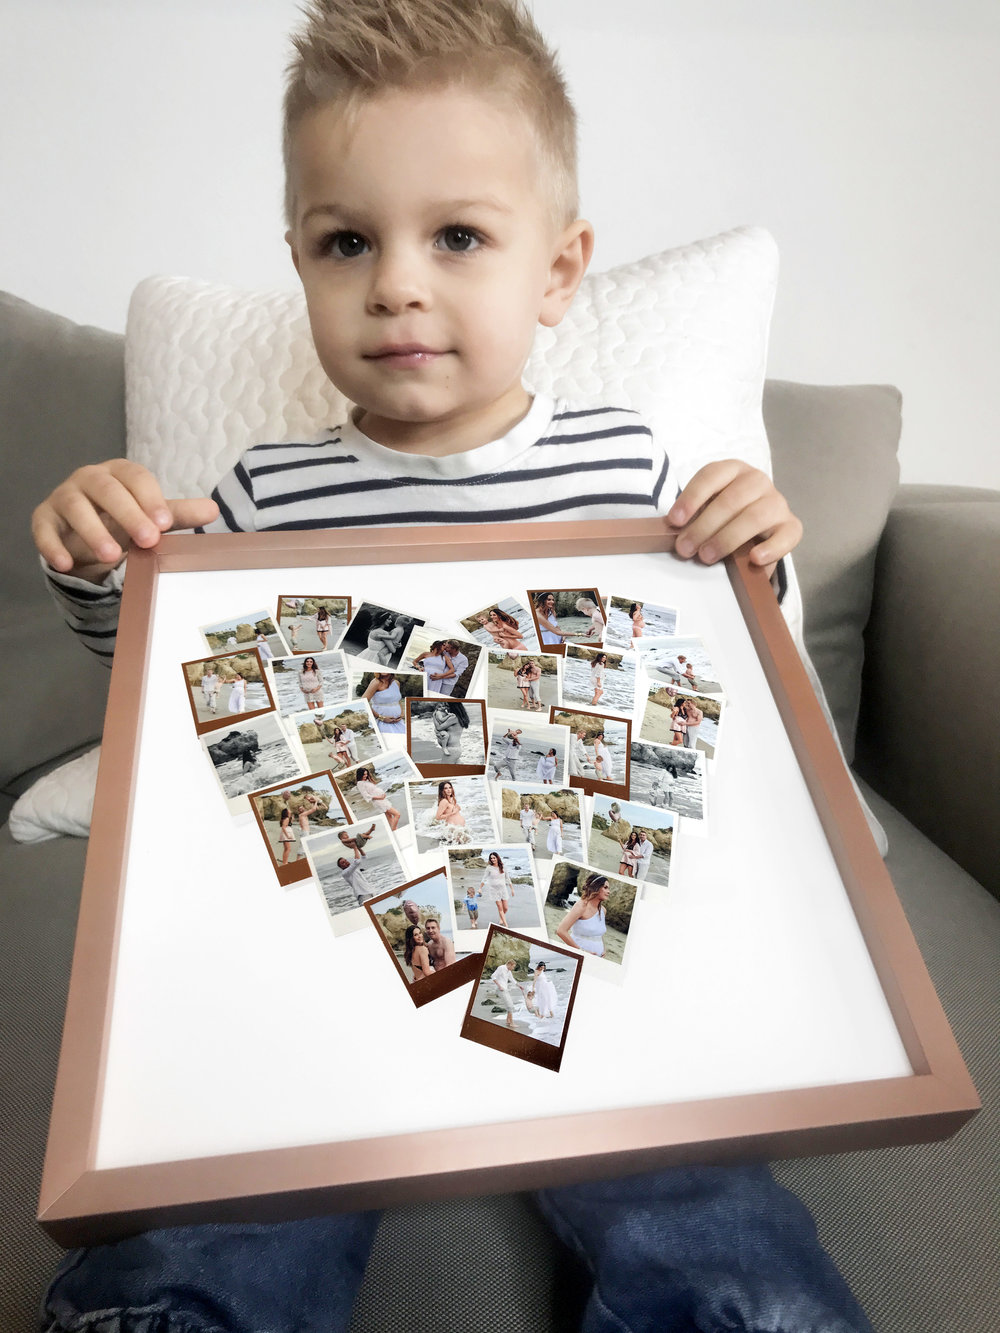 Aiden fell in love with our MInted  Heart Snapshot Mix™ photo art print  - and of course, he loved pointing to mommy, daddy and Aiden.